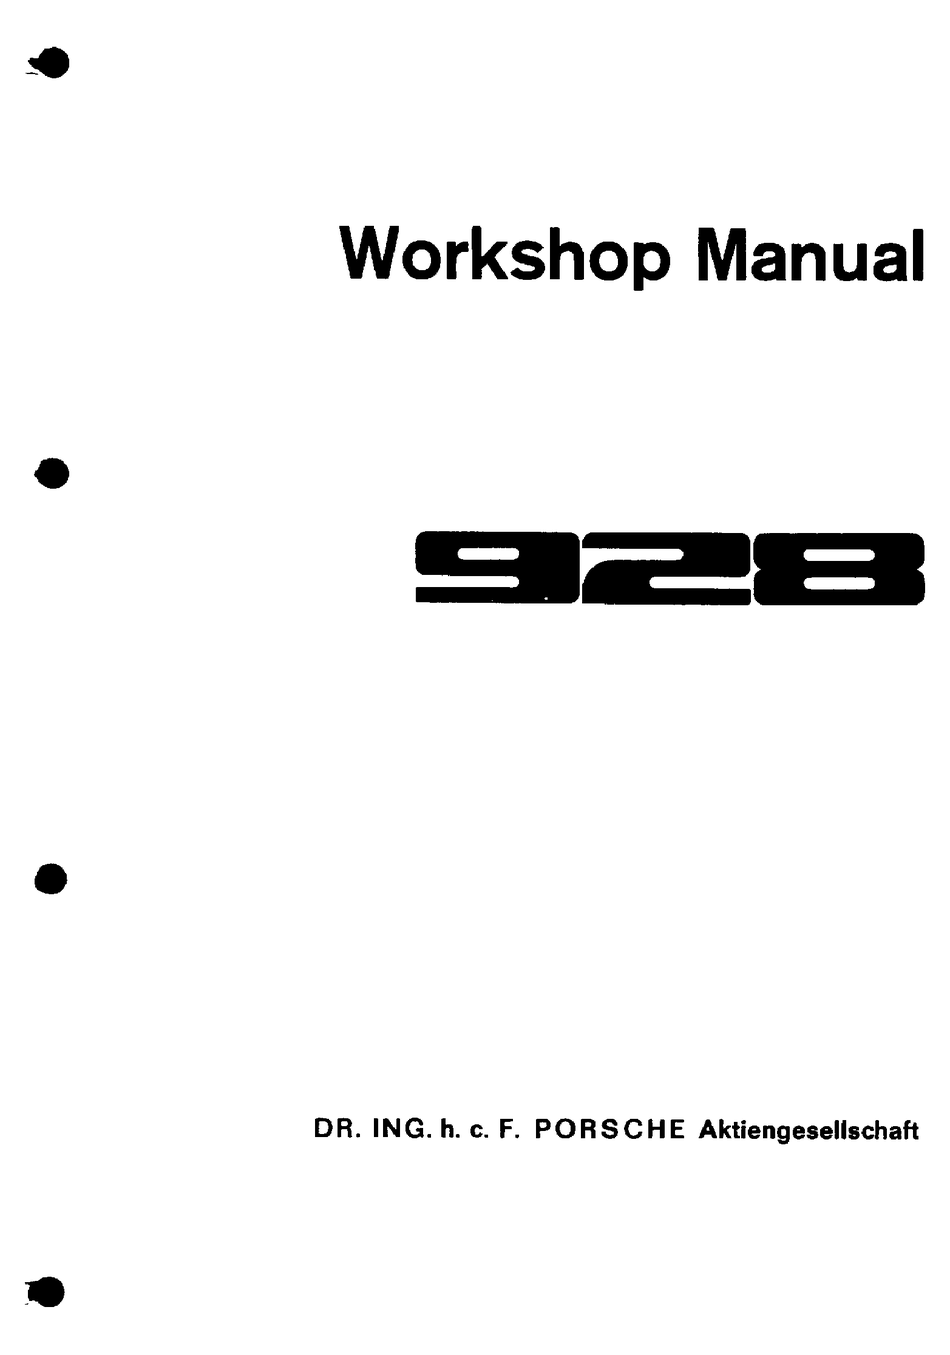 Porsche 928 Workshop Manual Pdf Download Manualslib